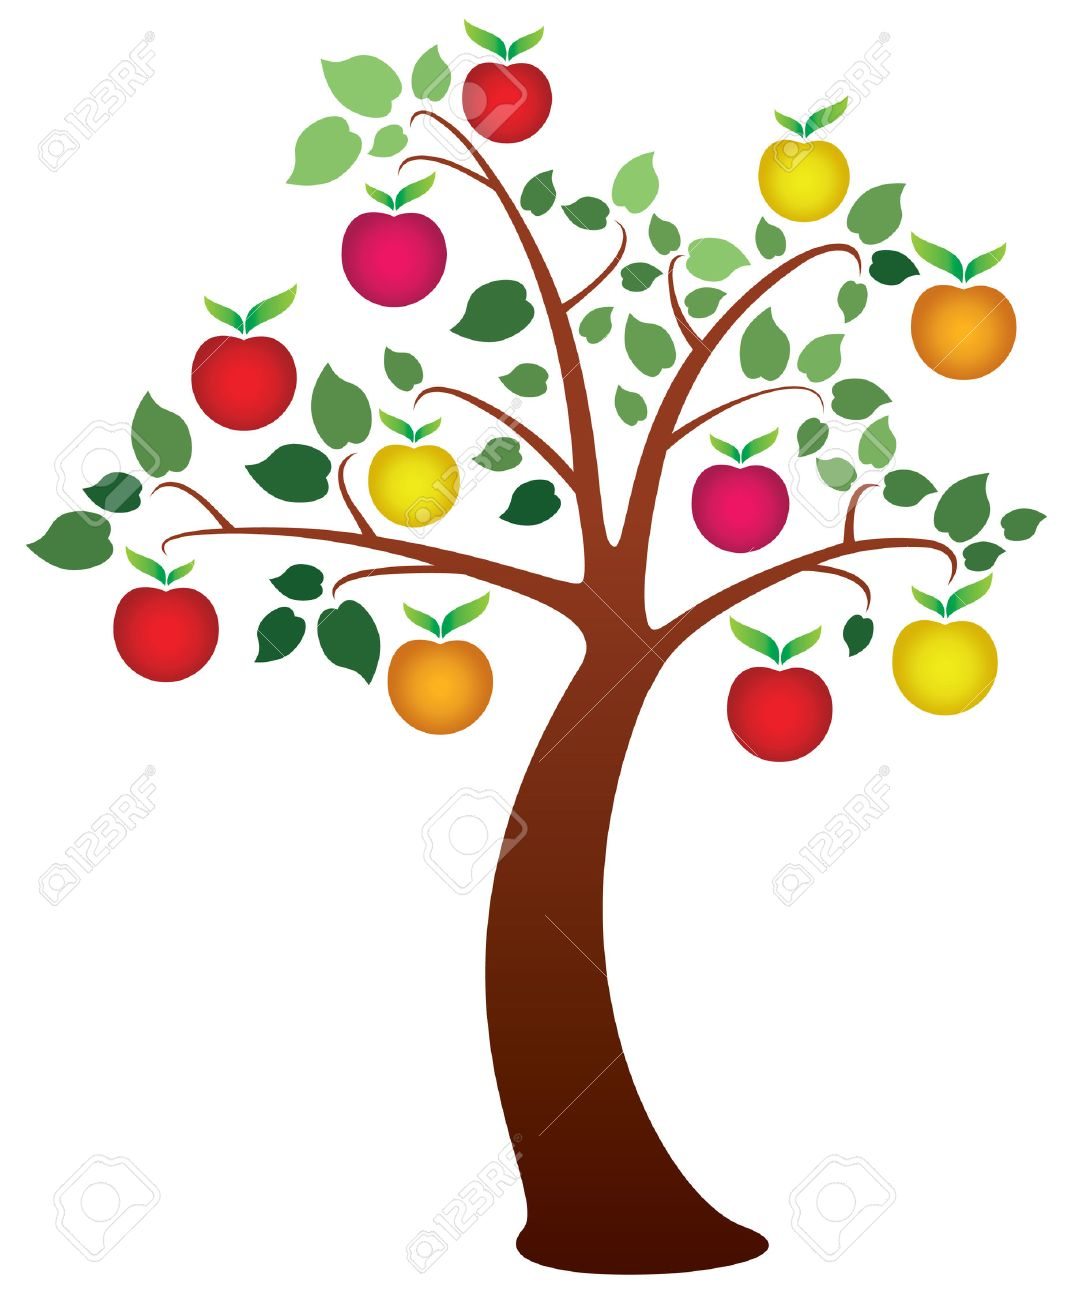 Tree with fruits clipart 7 » Clipart Station.